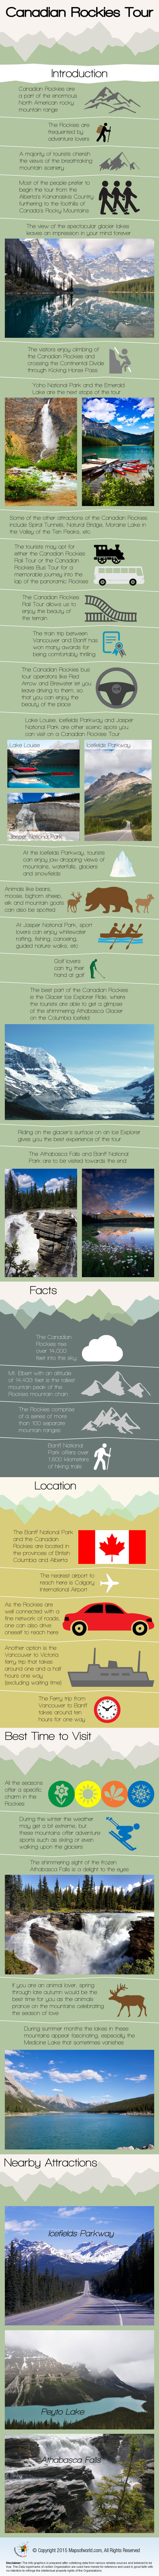 Canadian Rockies - Facts & Infographic